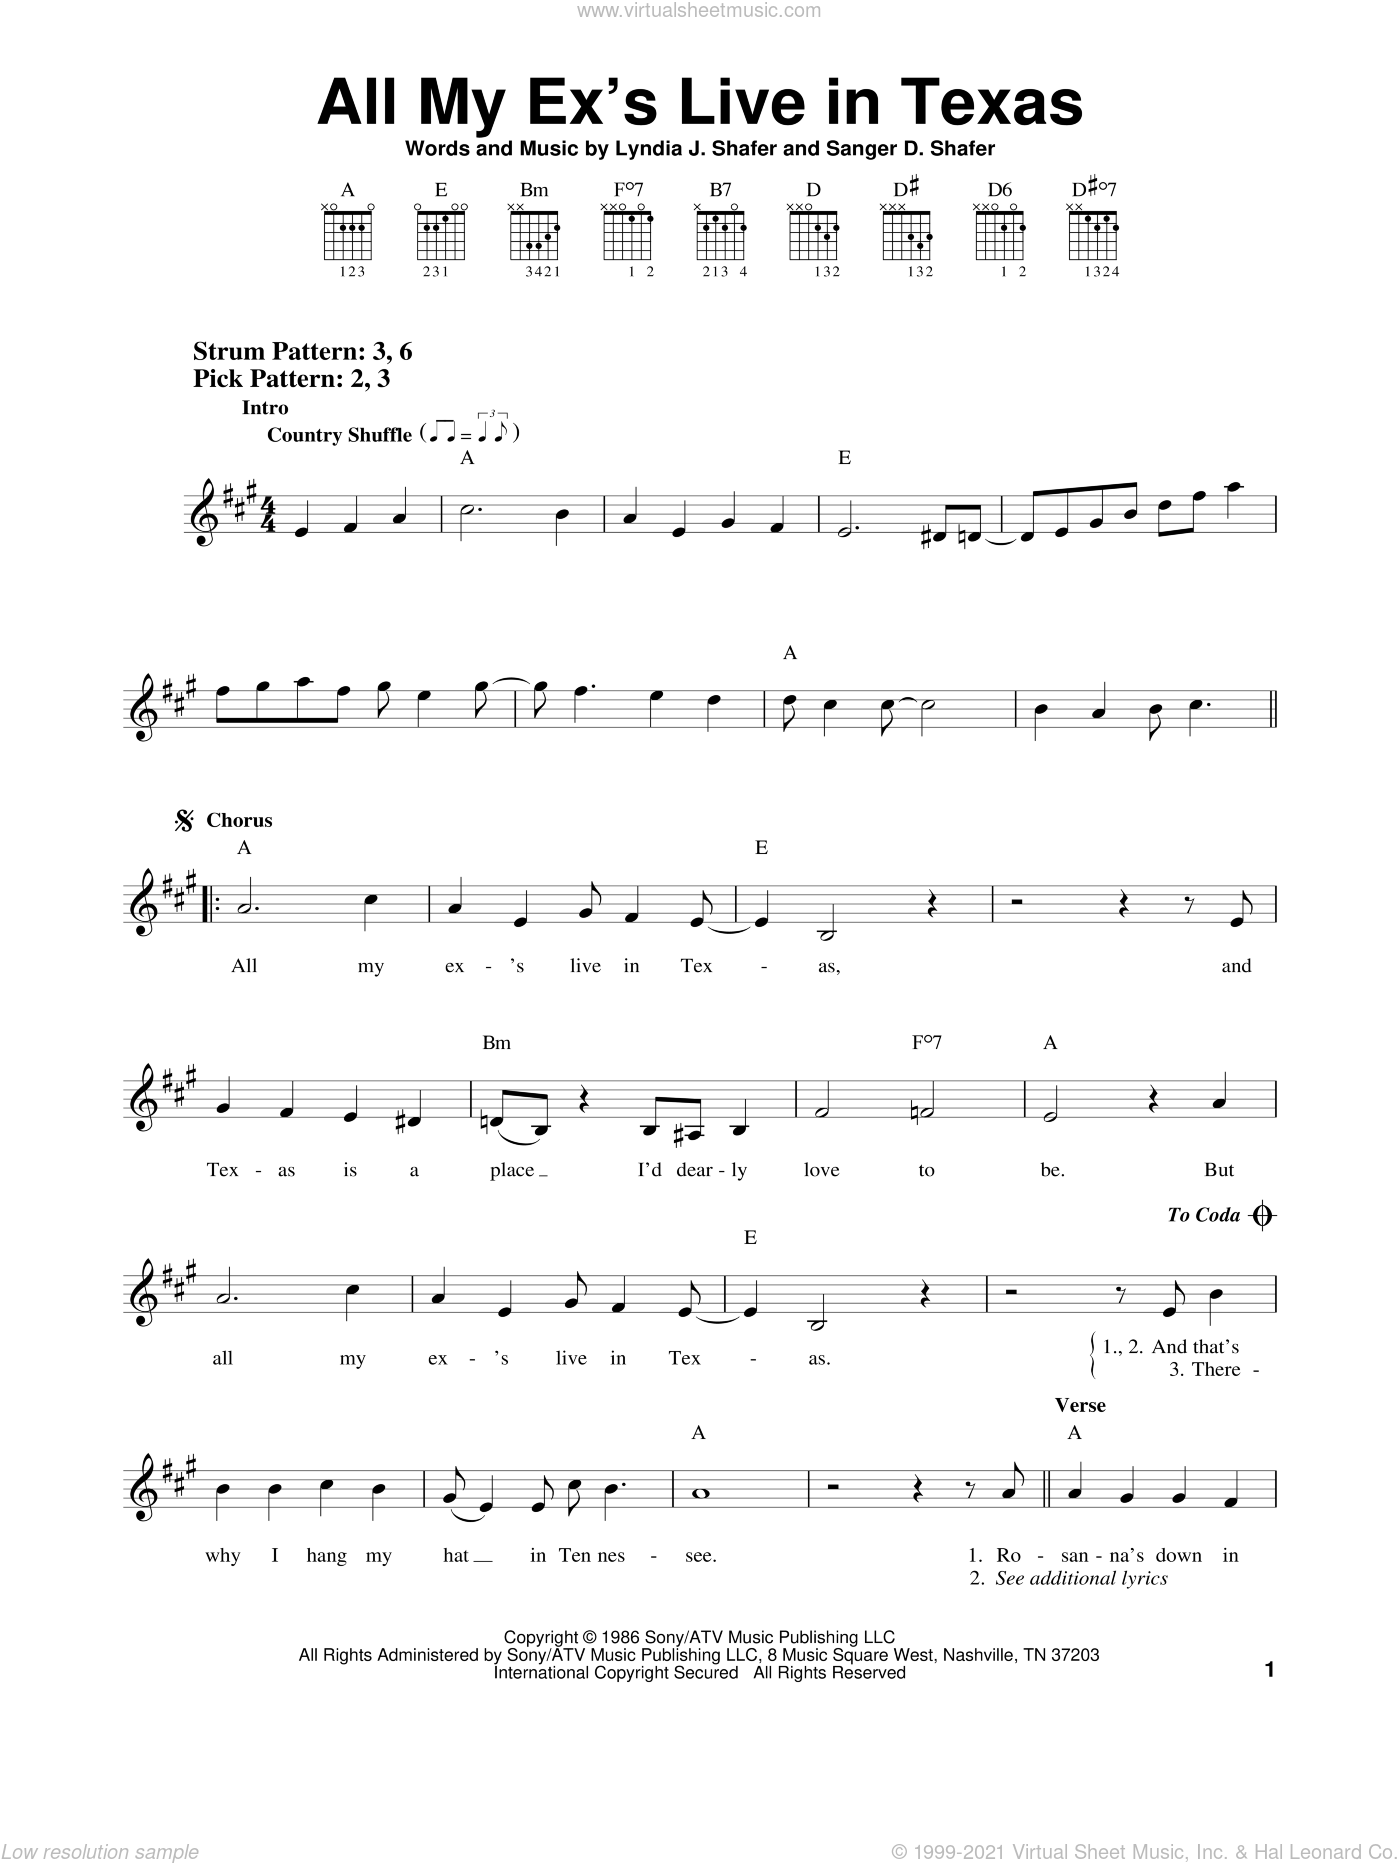 All My Ex's Live In Texas sheet music for guitar solo (chords) by Sanger D. Shafer